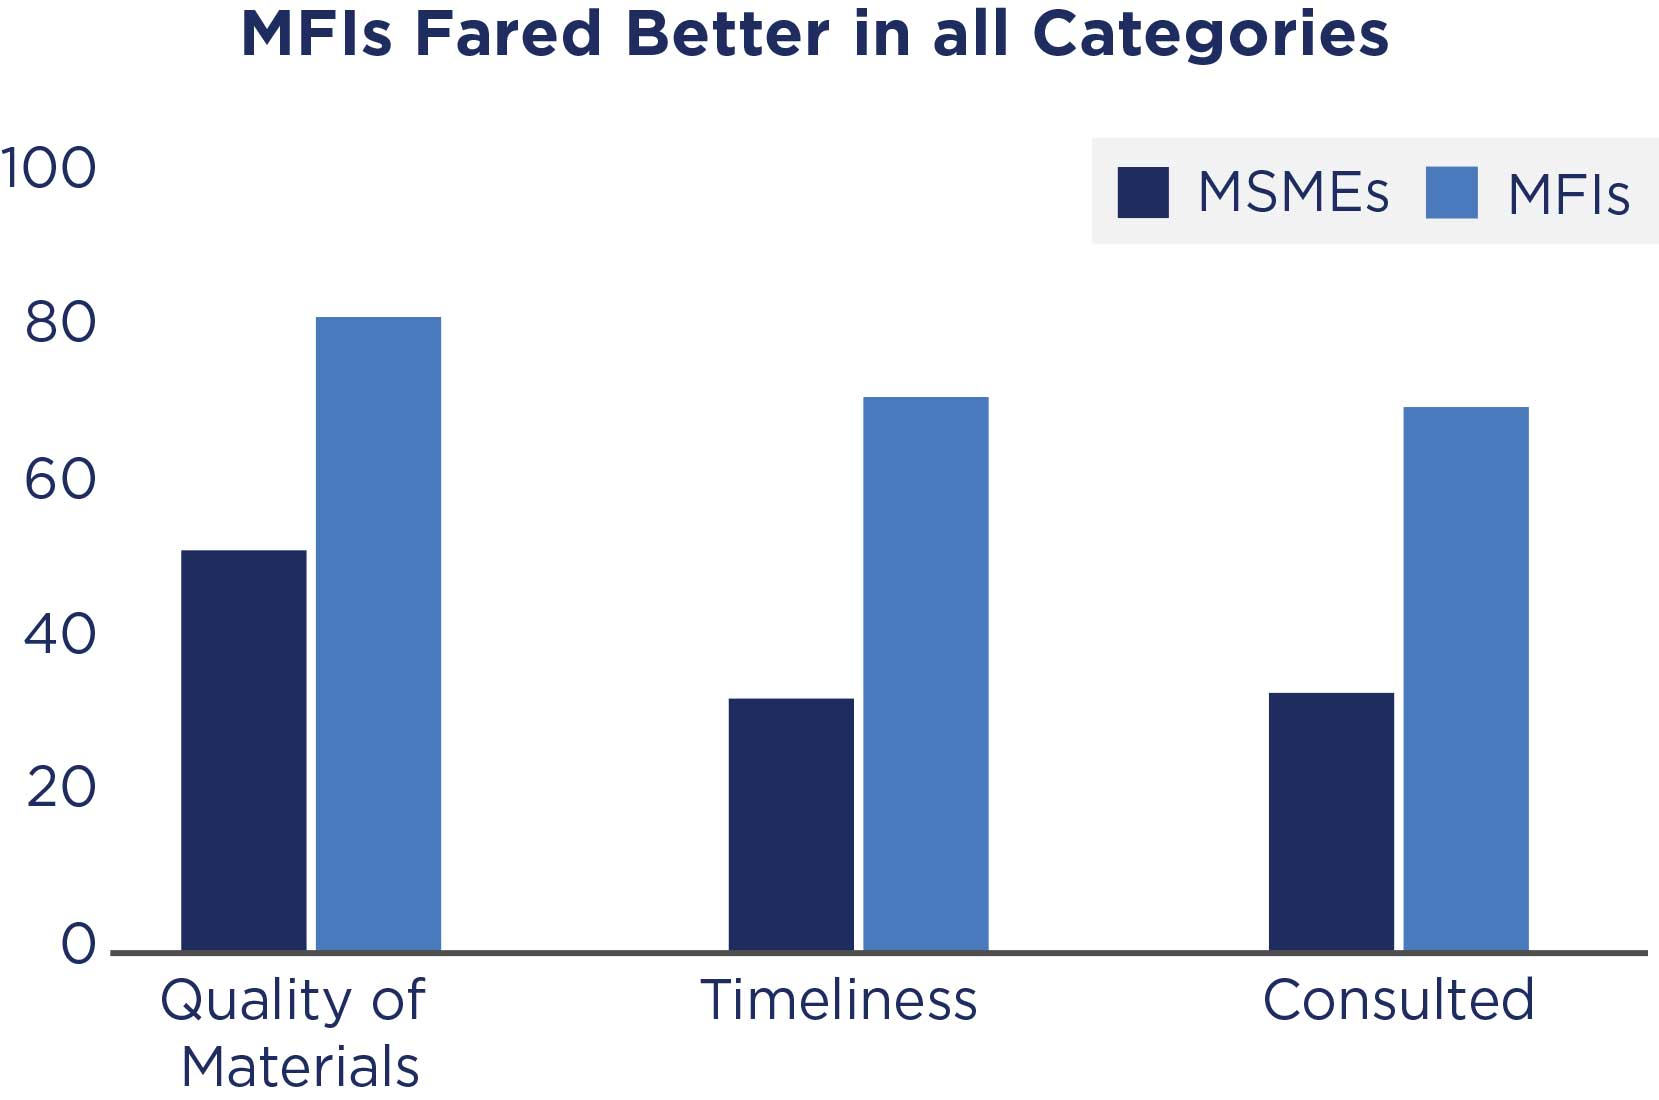 Charts showing MFIs fared better than MSMEs in all categories.